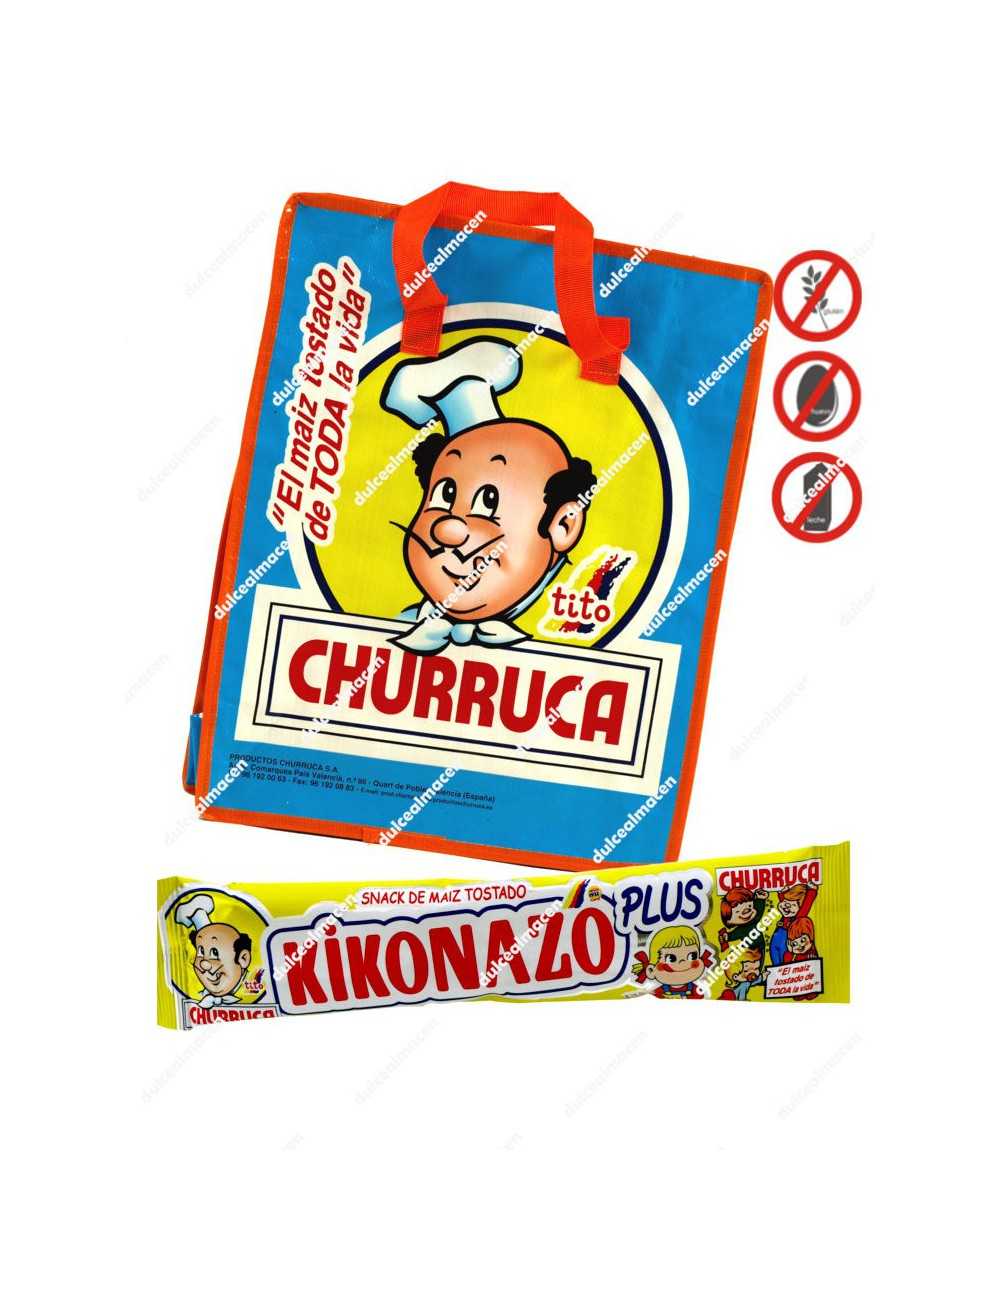 Churruca kikonazo plus 45+5